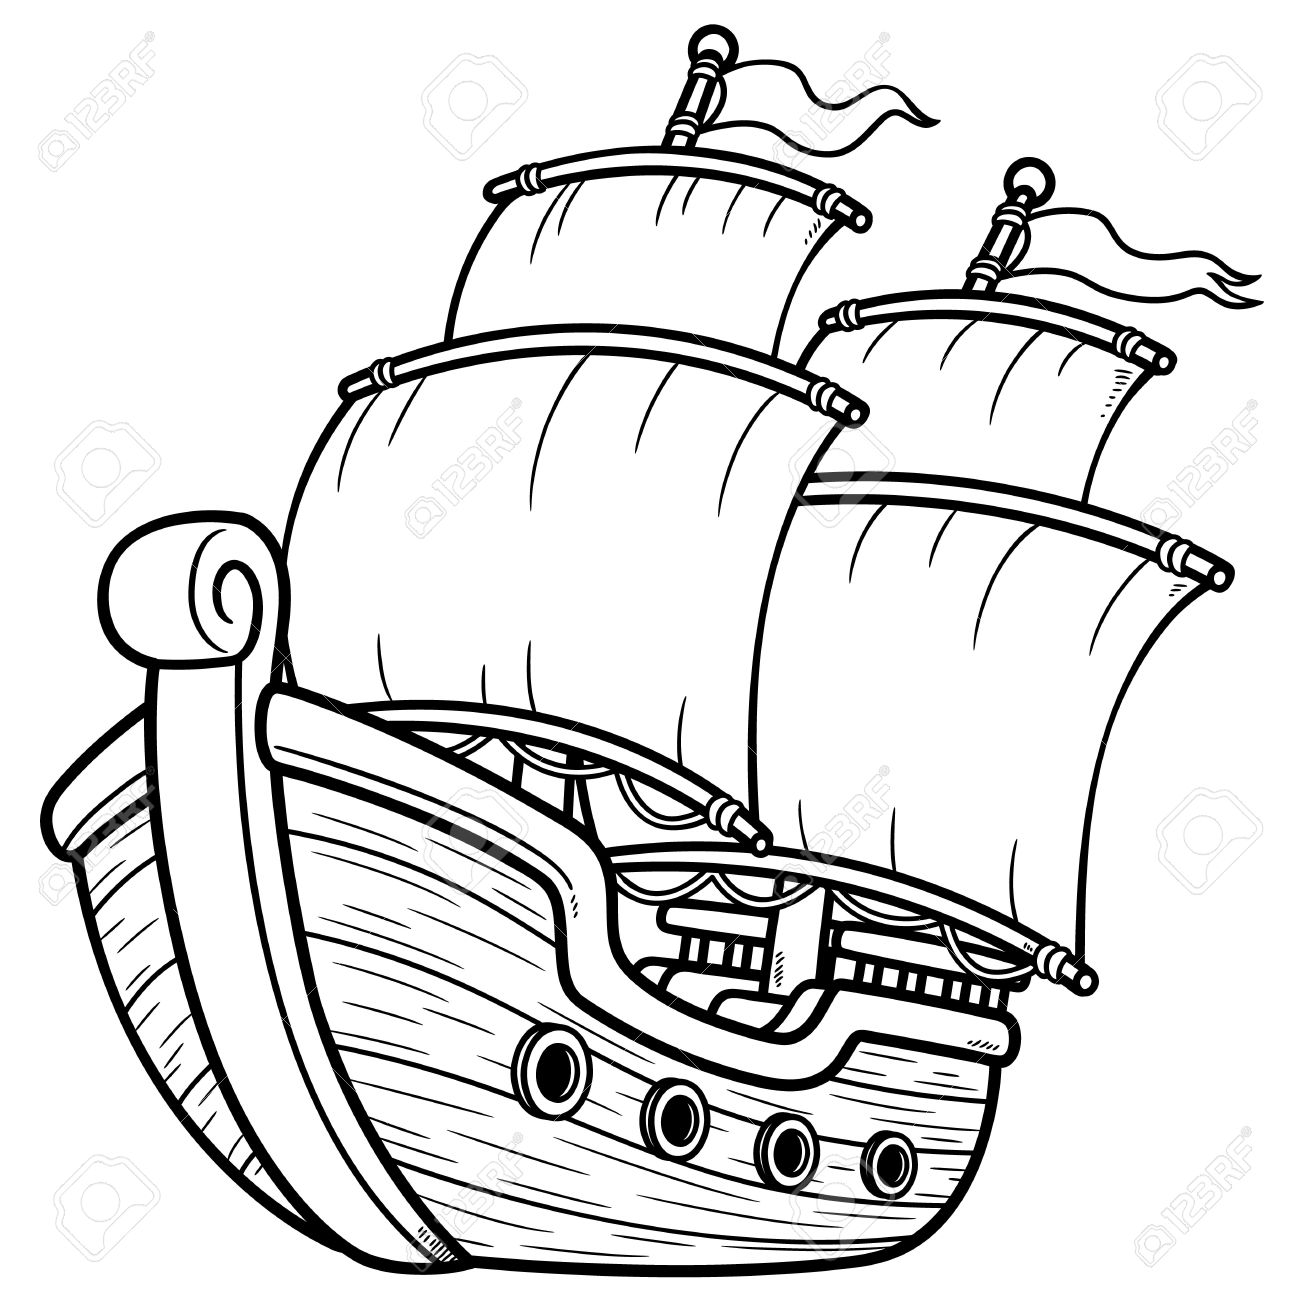 Vector Illustration De Bateau De Pirate Livre à Colorier